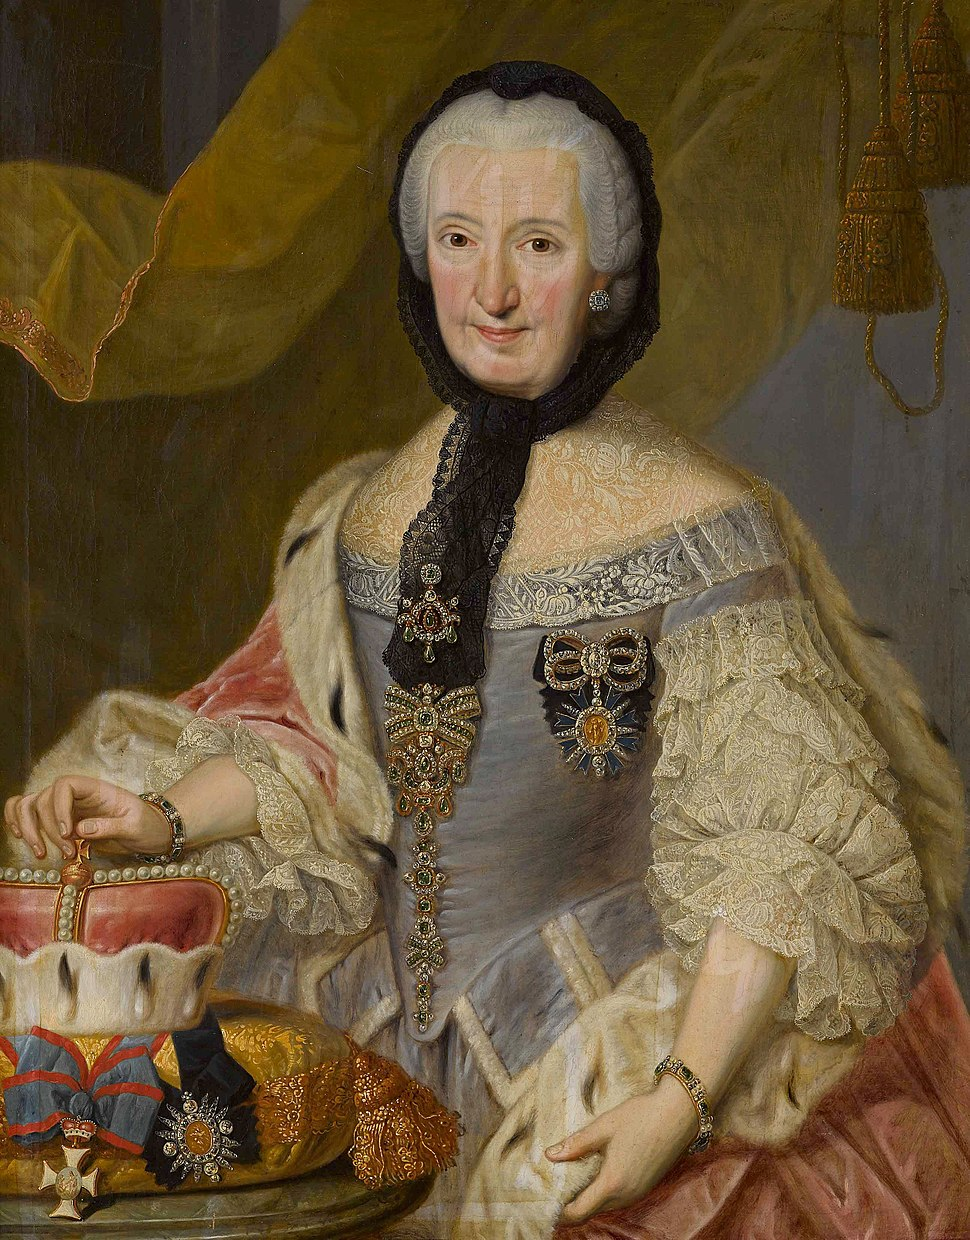 Francisca Christina of the Palatinate-Sulzbach princess-abbess of Essen and Thorn